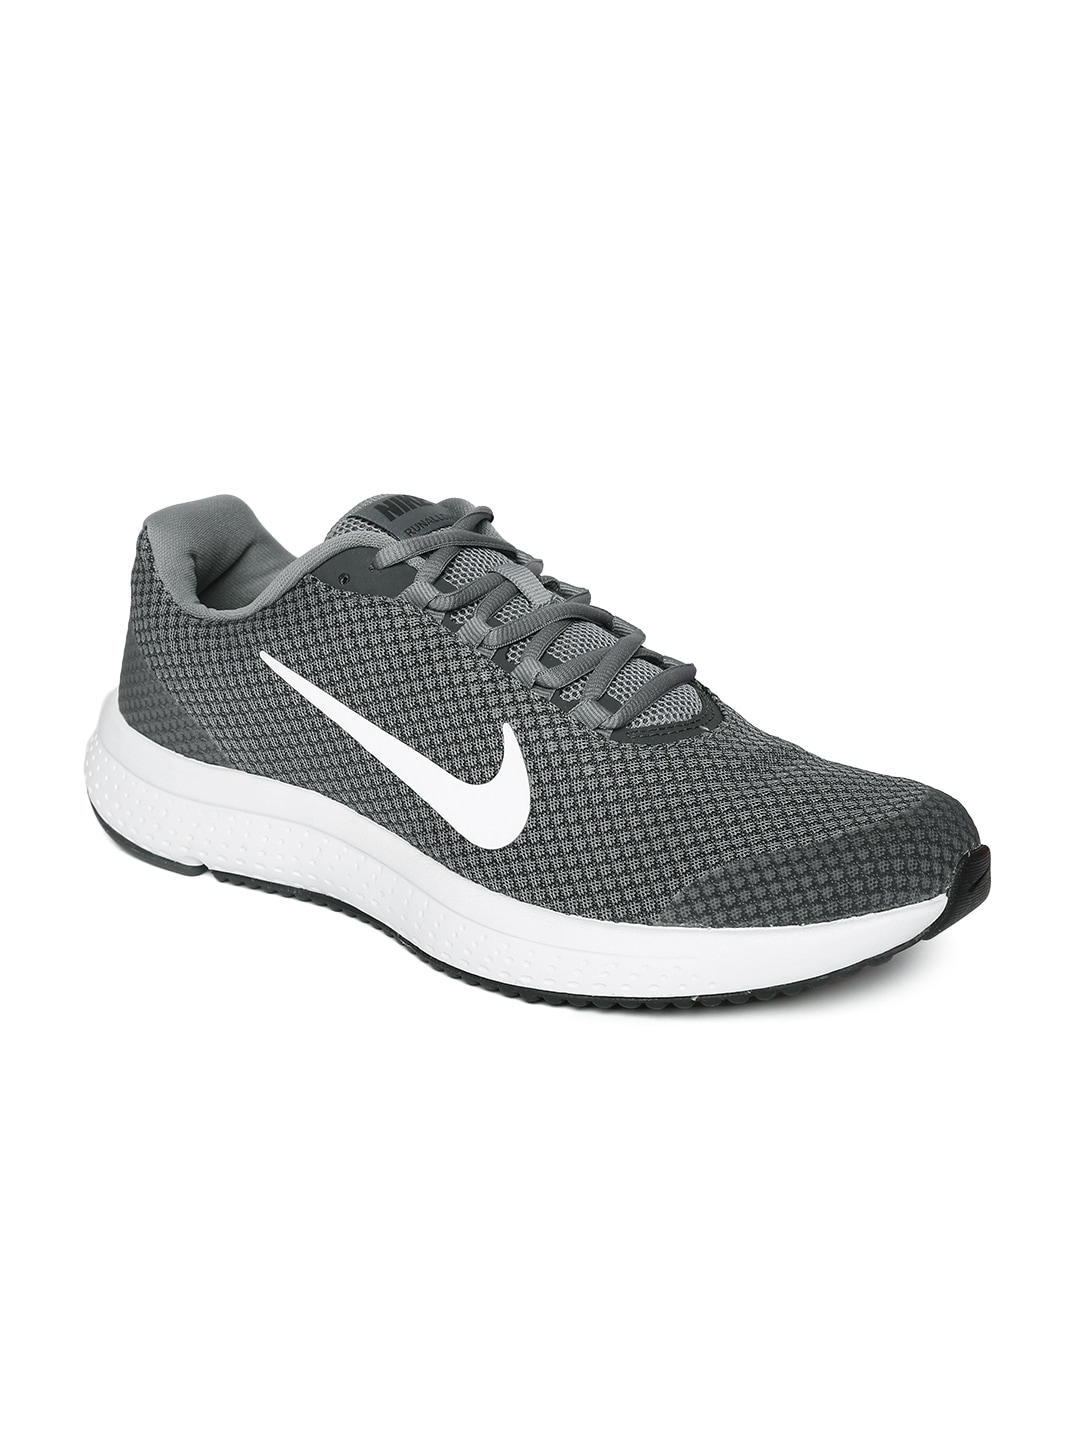 pretty nice f80d5 e5cd5 Nike Levis Shoe Casual Shoes - Buy Nike Levis Shoe Casual Shoes online in  India